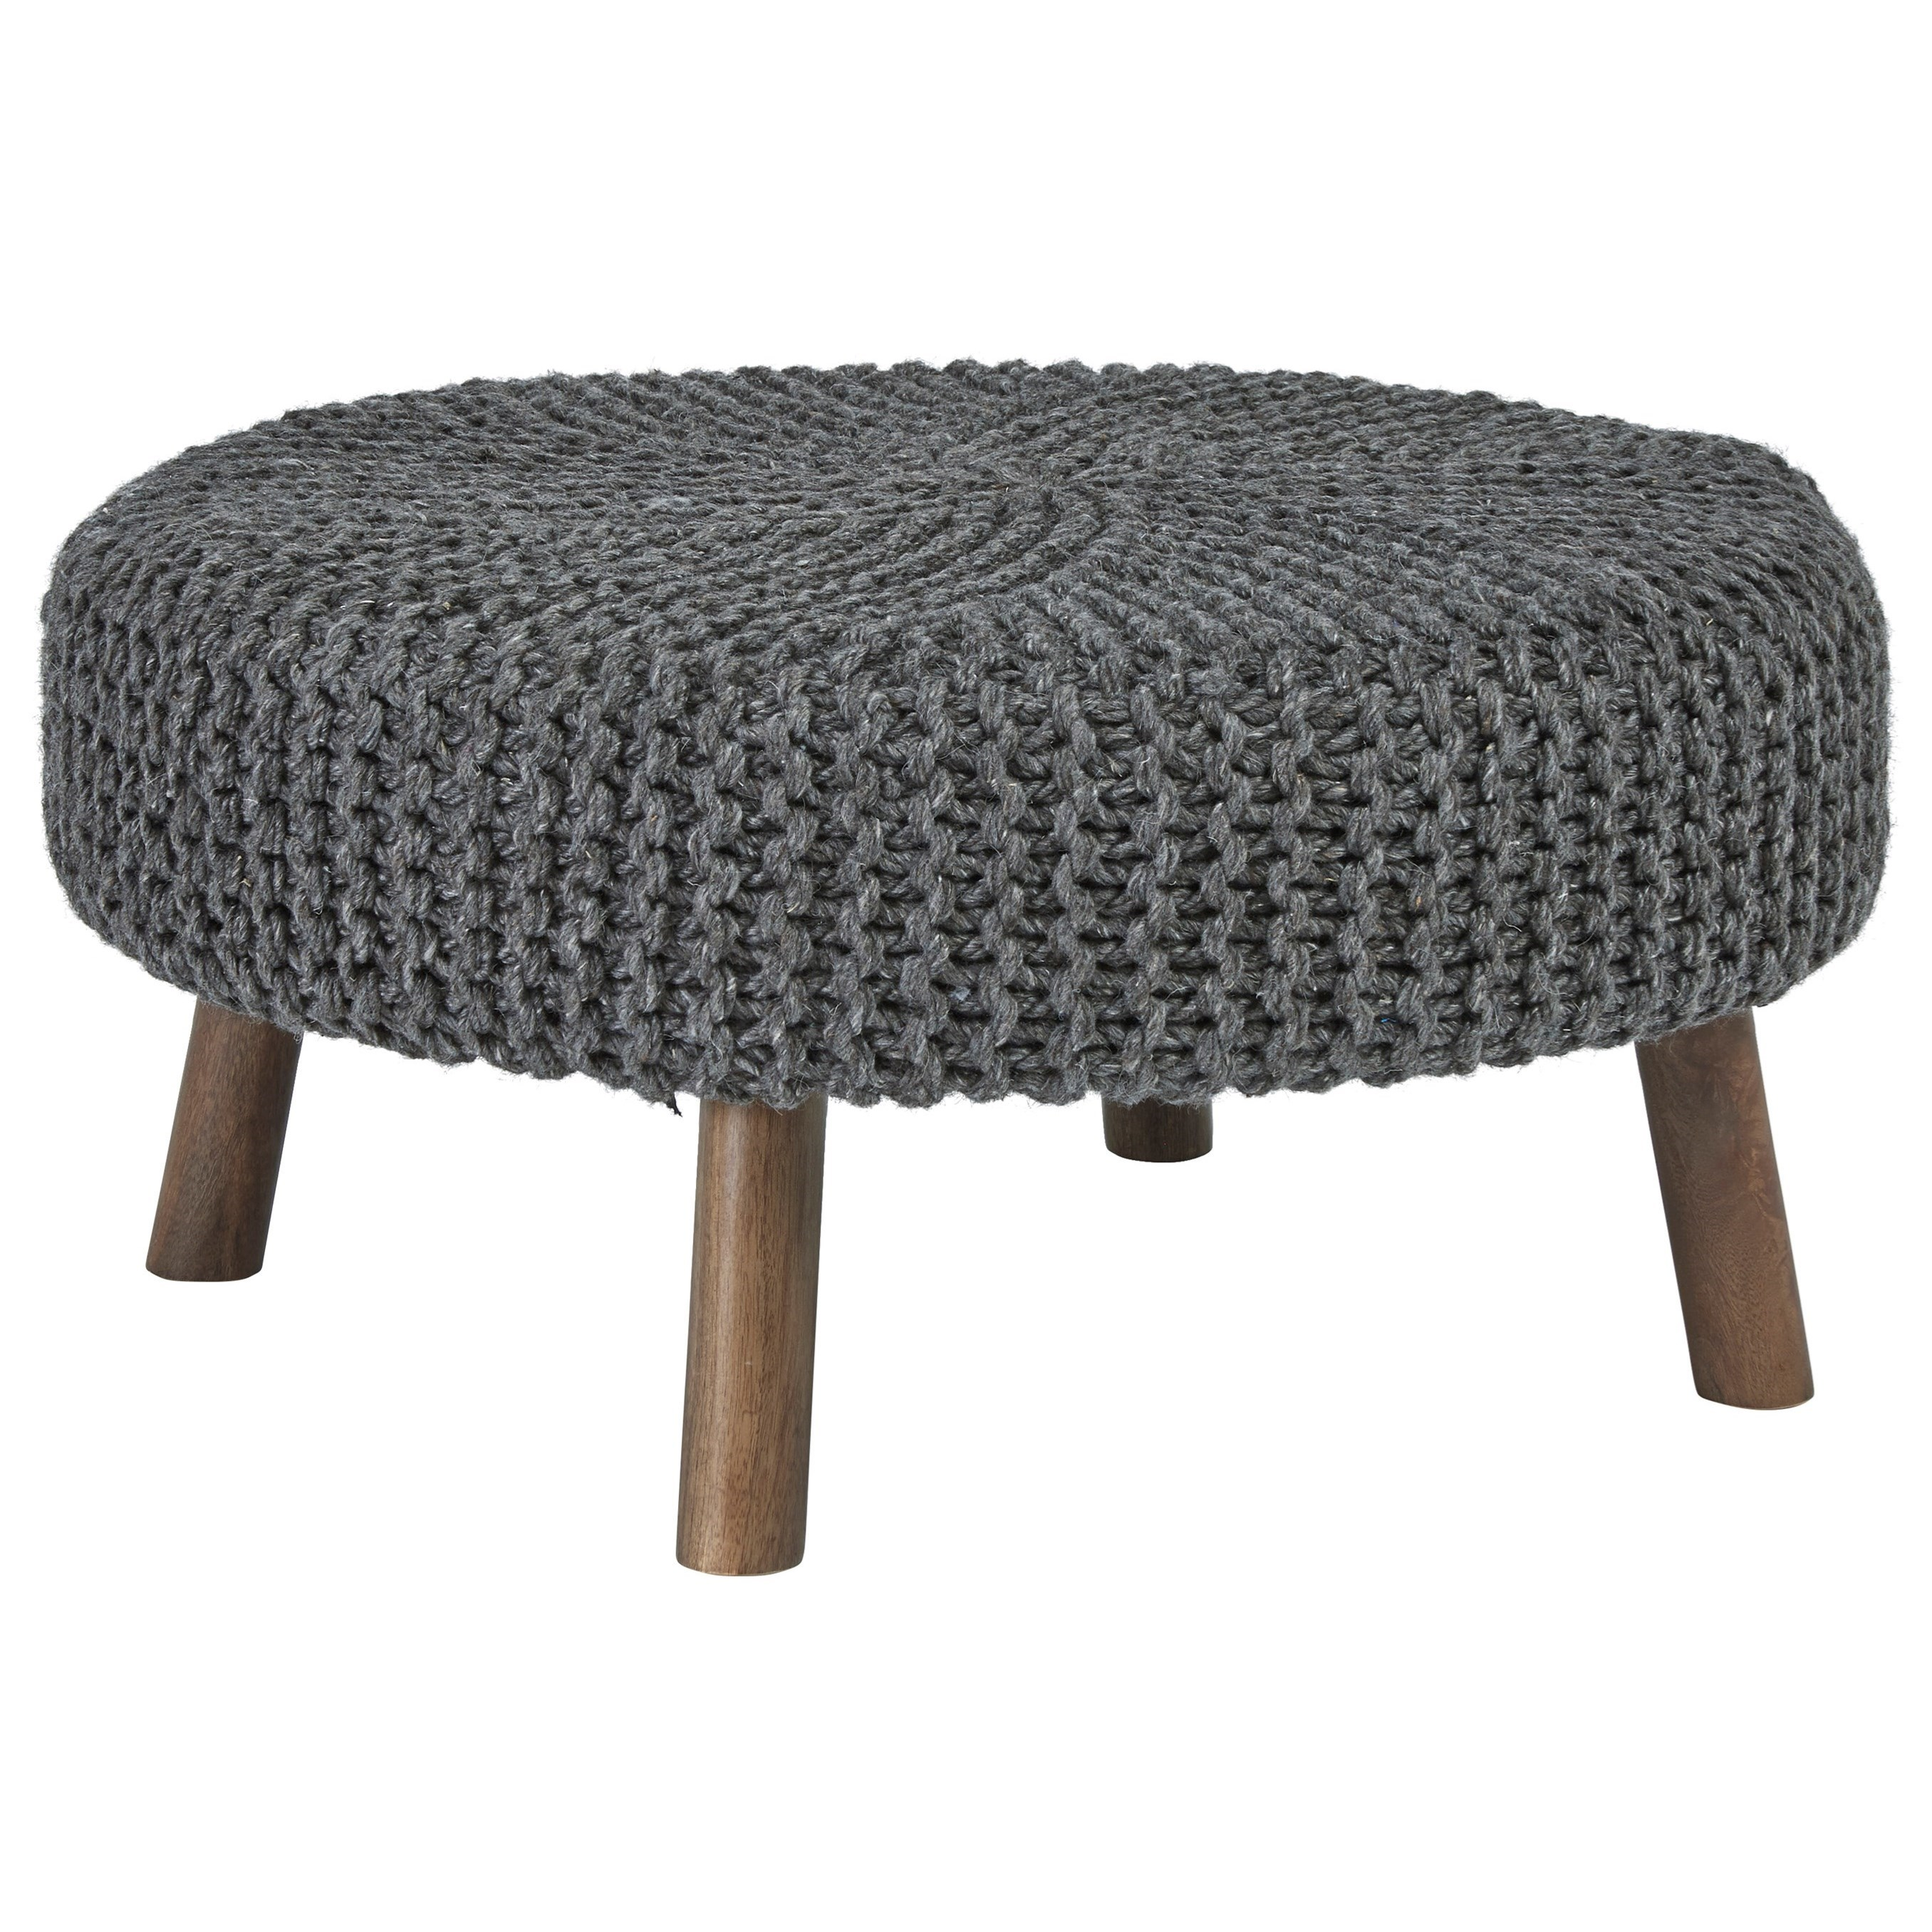 Jassmyn Oversized Accent Ottoman by Signature Design by Ashley at Northeast Factory Direct